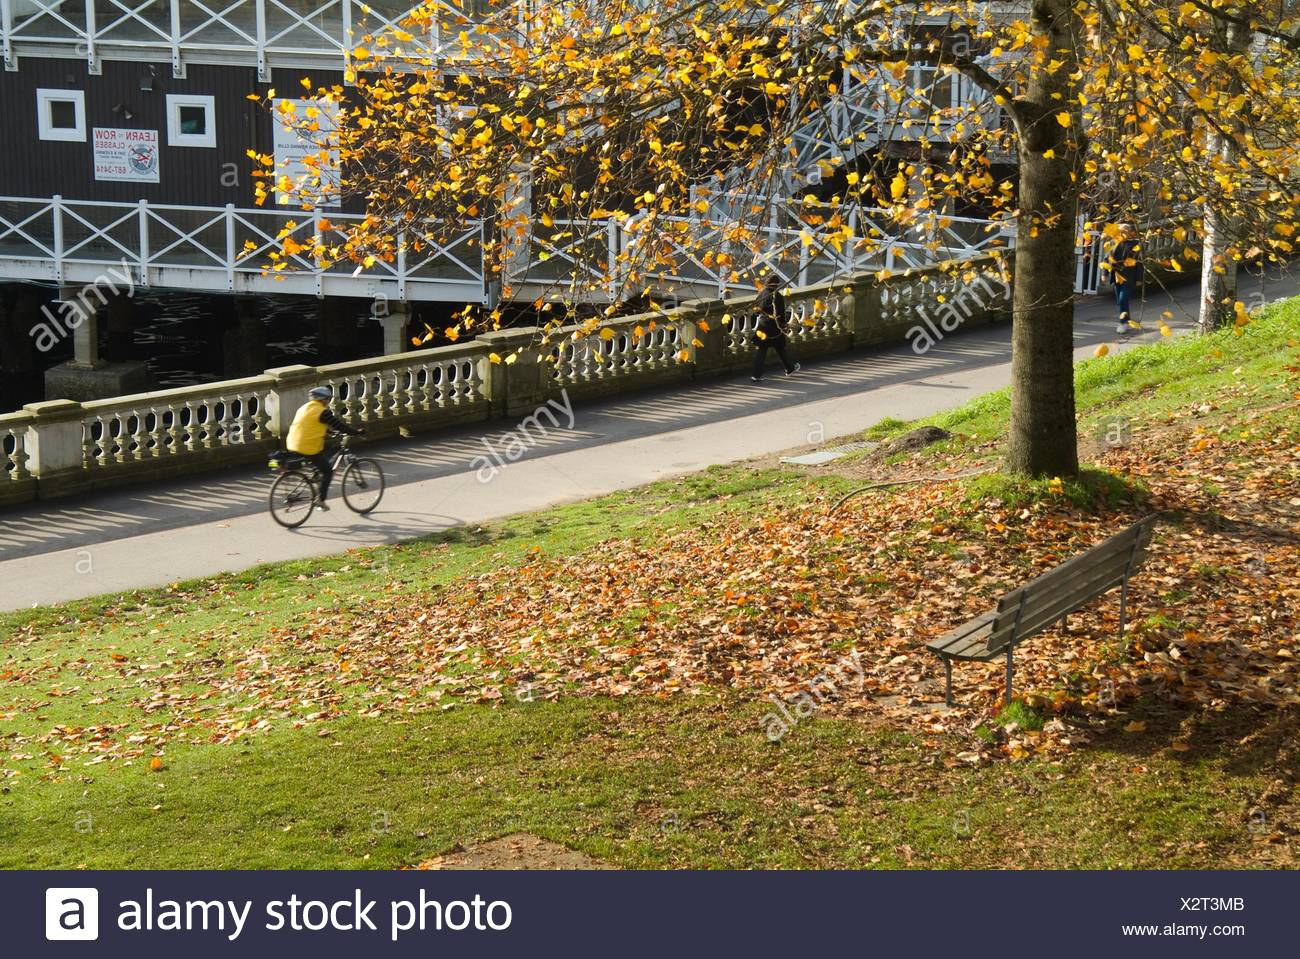 a bicyclist uses the seawall path in Stanley Park, next to the rowing club, Vancouver, BC, Canada - Stock Image